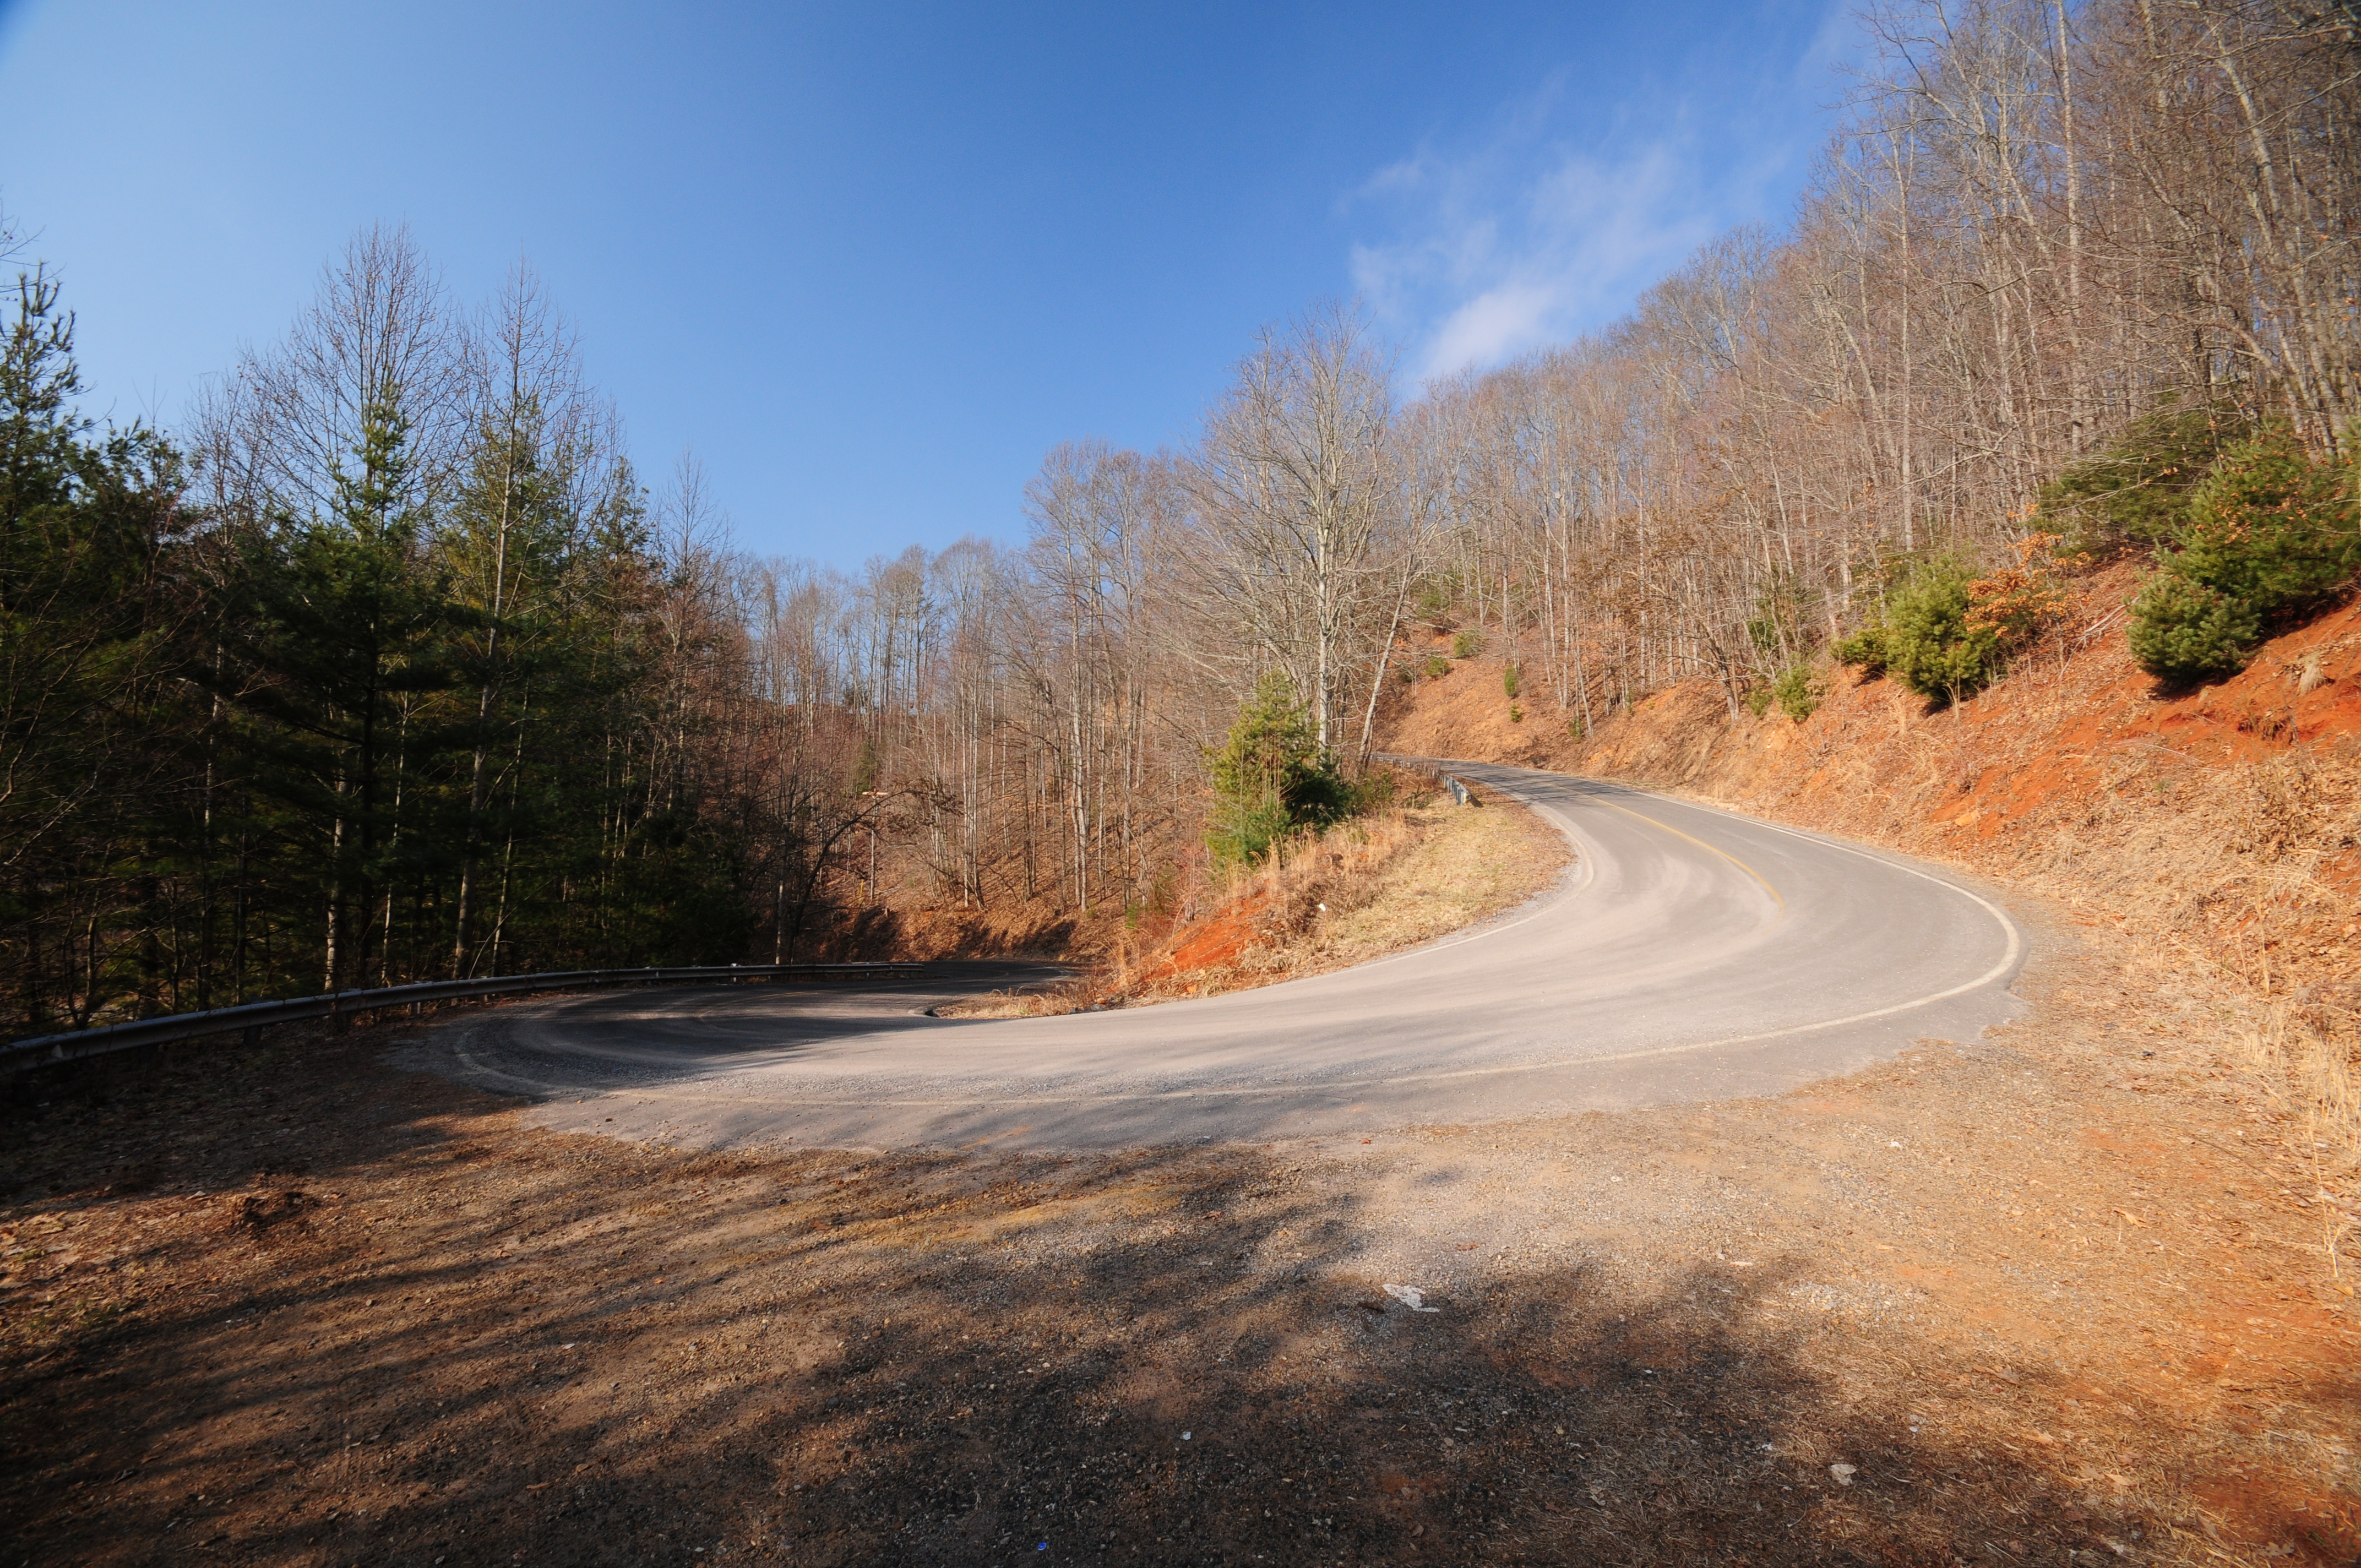 A hairpin turn on a mountainside road